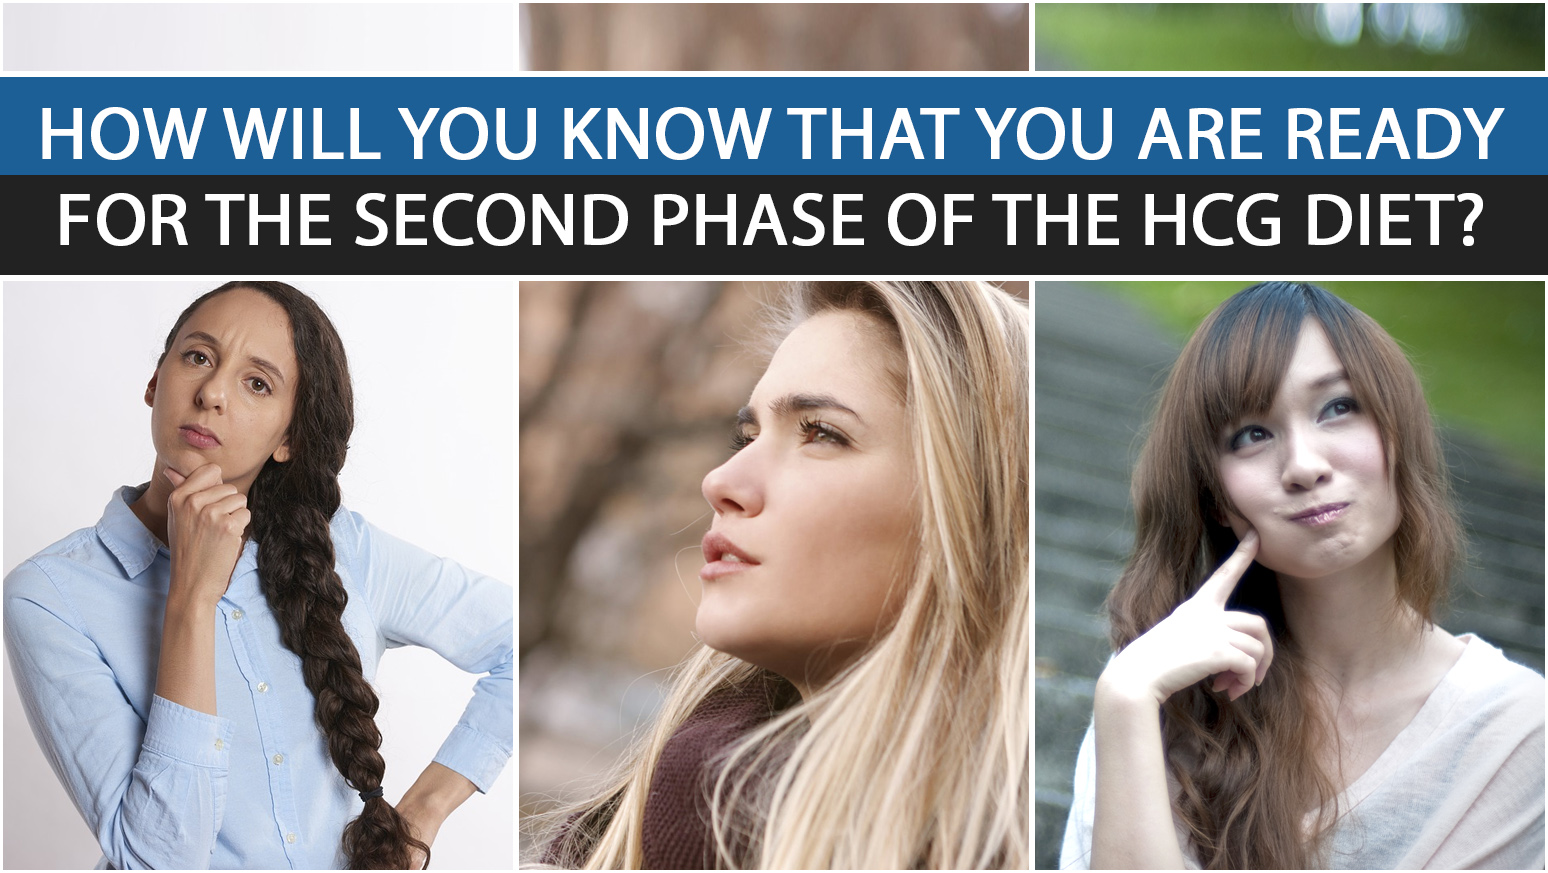 HOW WILL YOU KNOW THAT YOU ARE READY FOR THE SECOND PHASE OF THE HCG DIET